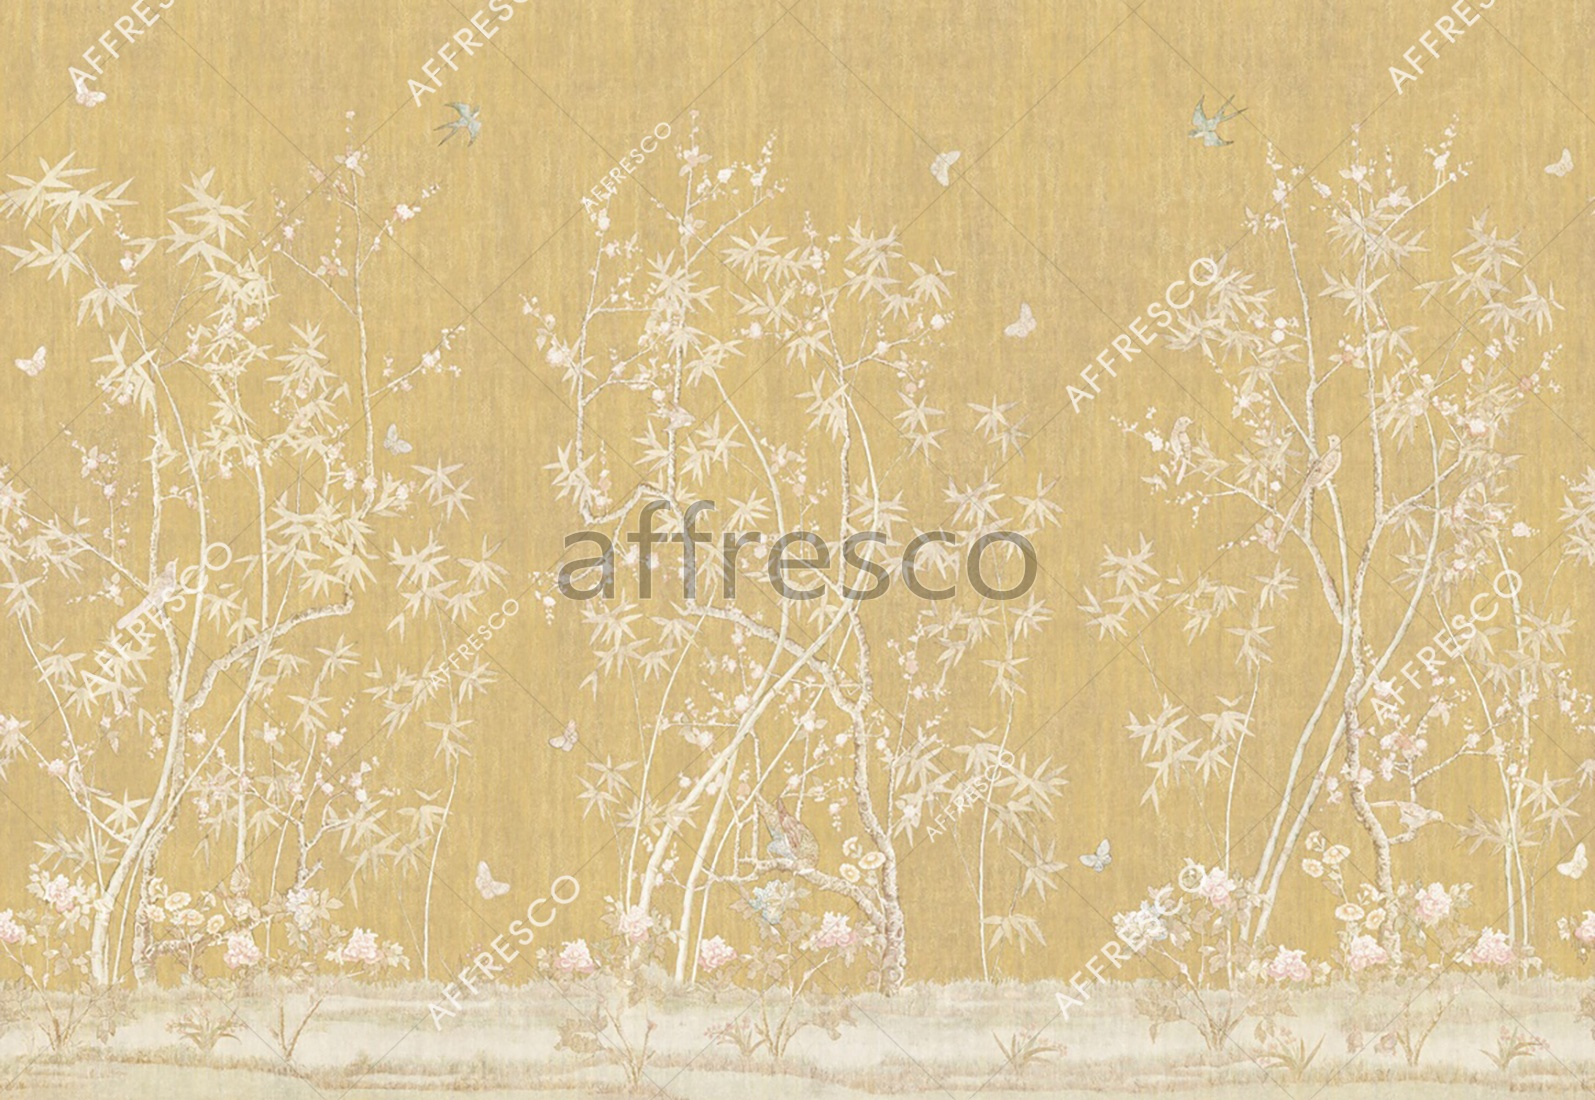 6889 | Gardens | Birds and butterflies on trees | Affresco Factory